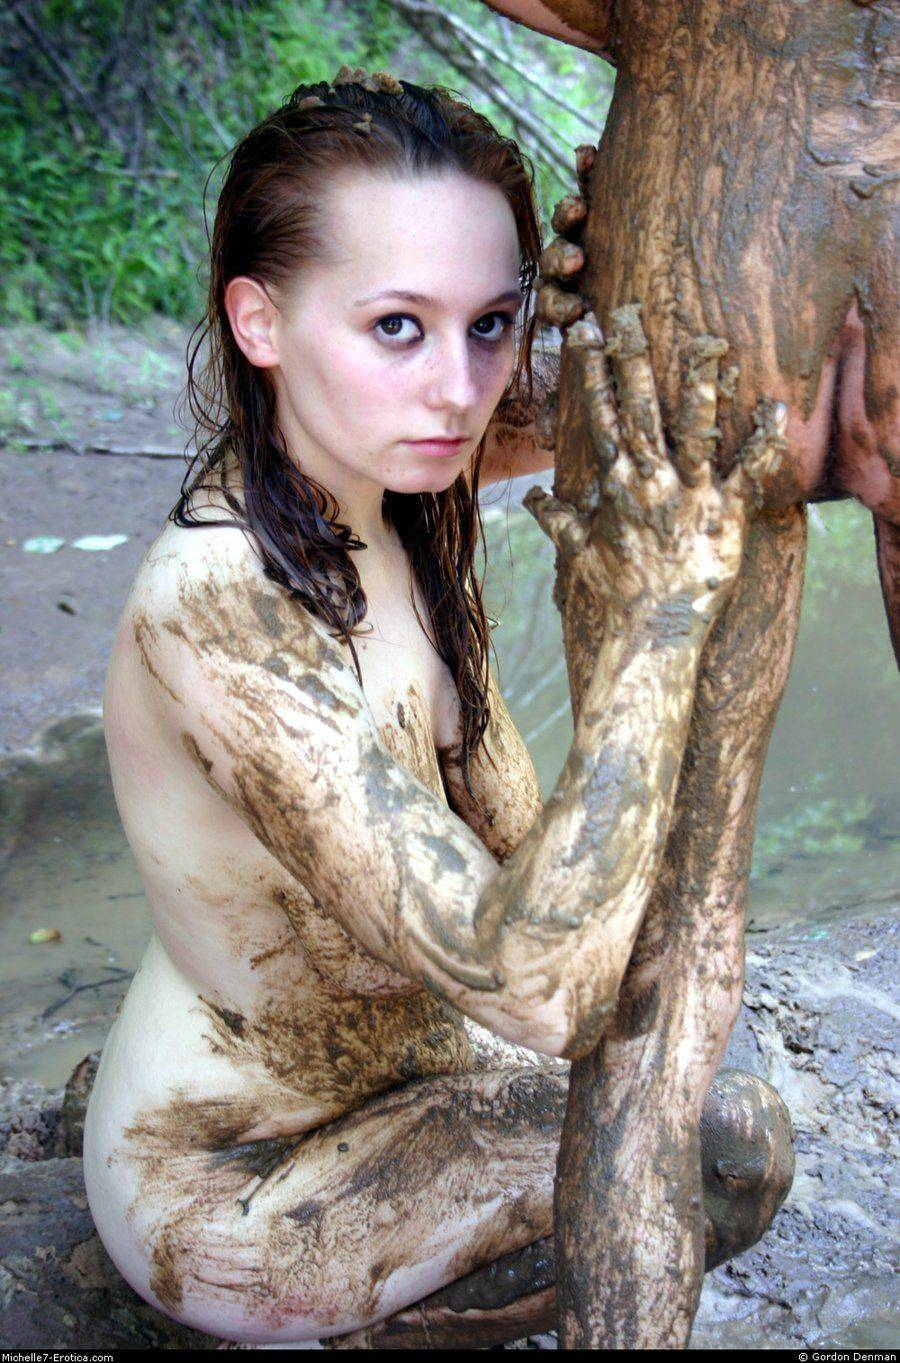 Muddy bdsm sex galleries